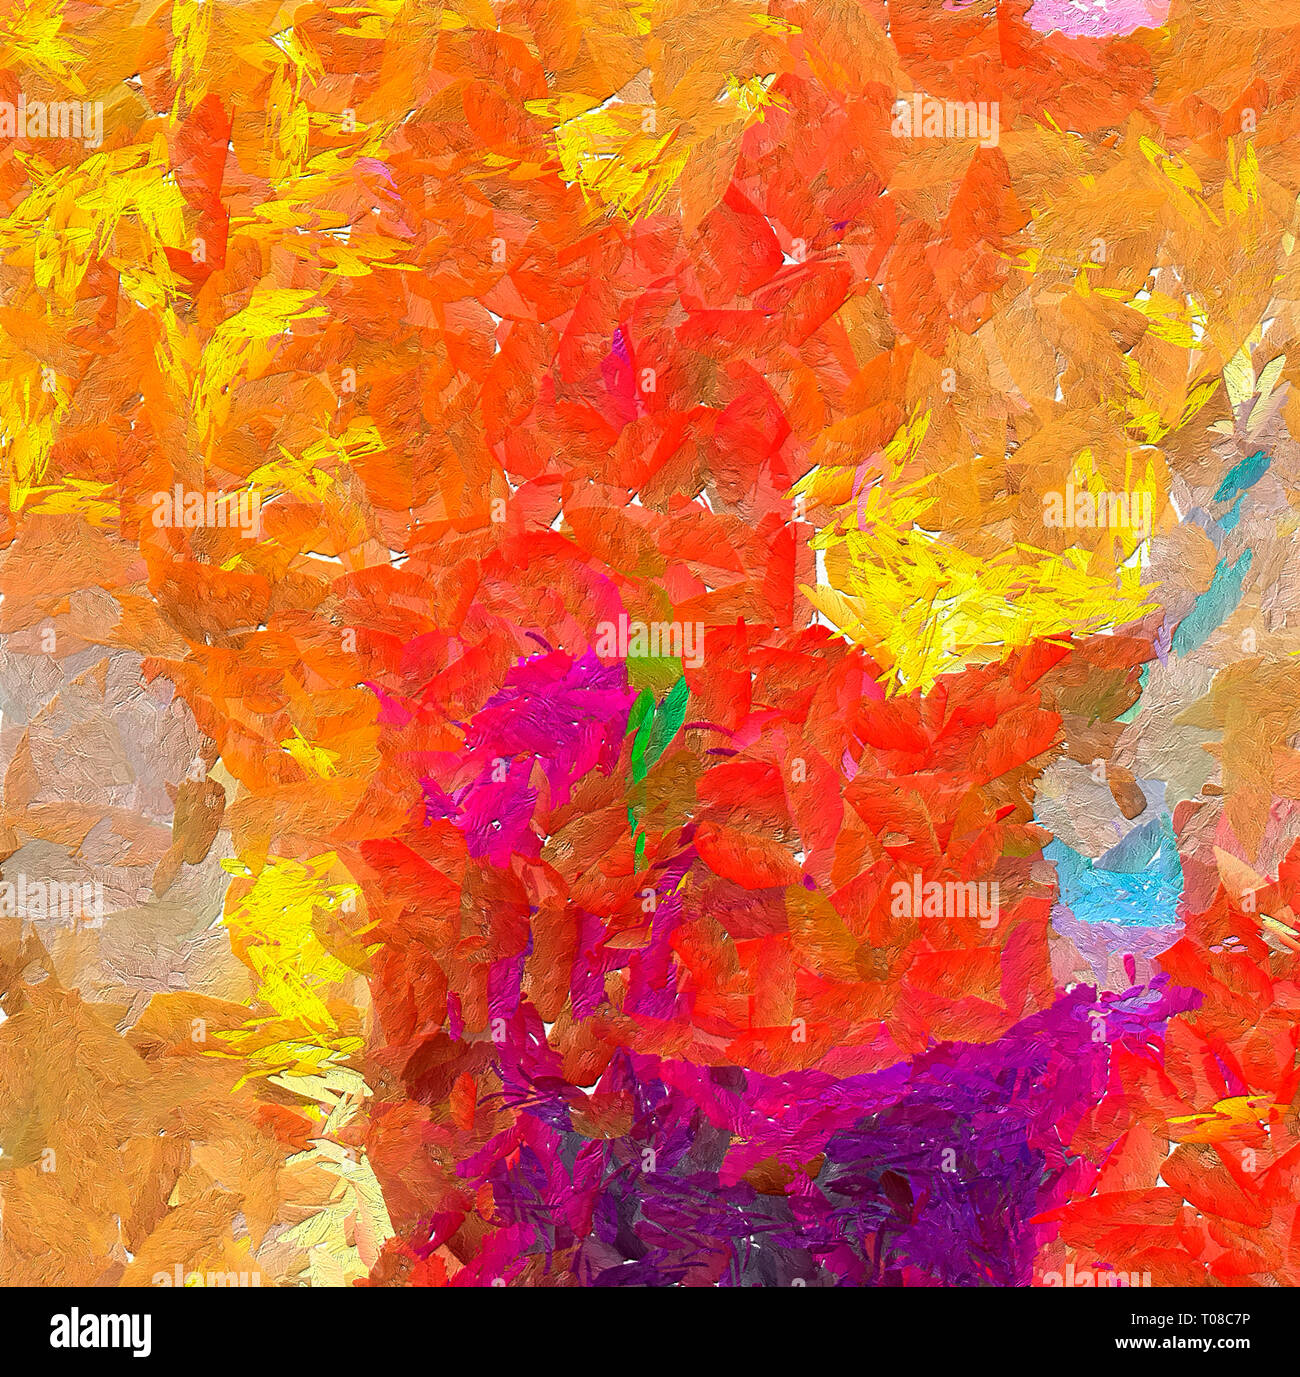 pretty oil painting abstraction